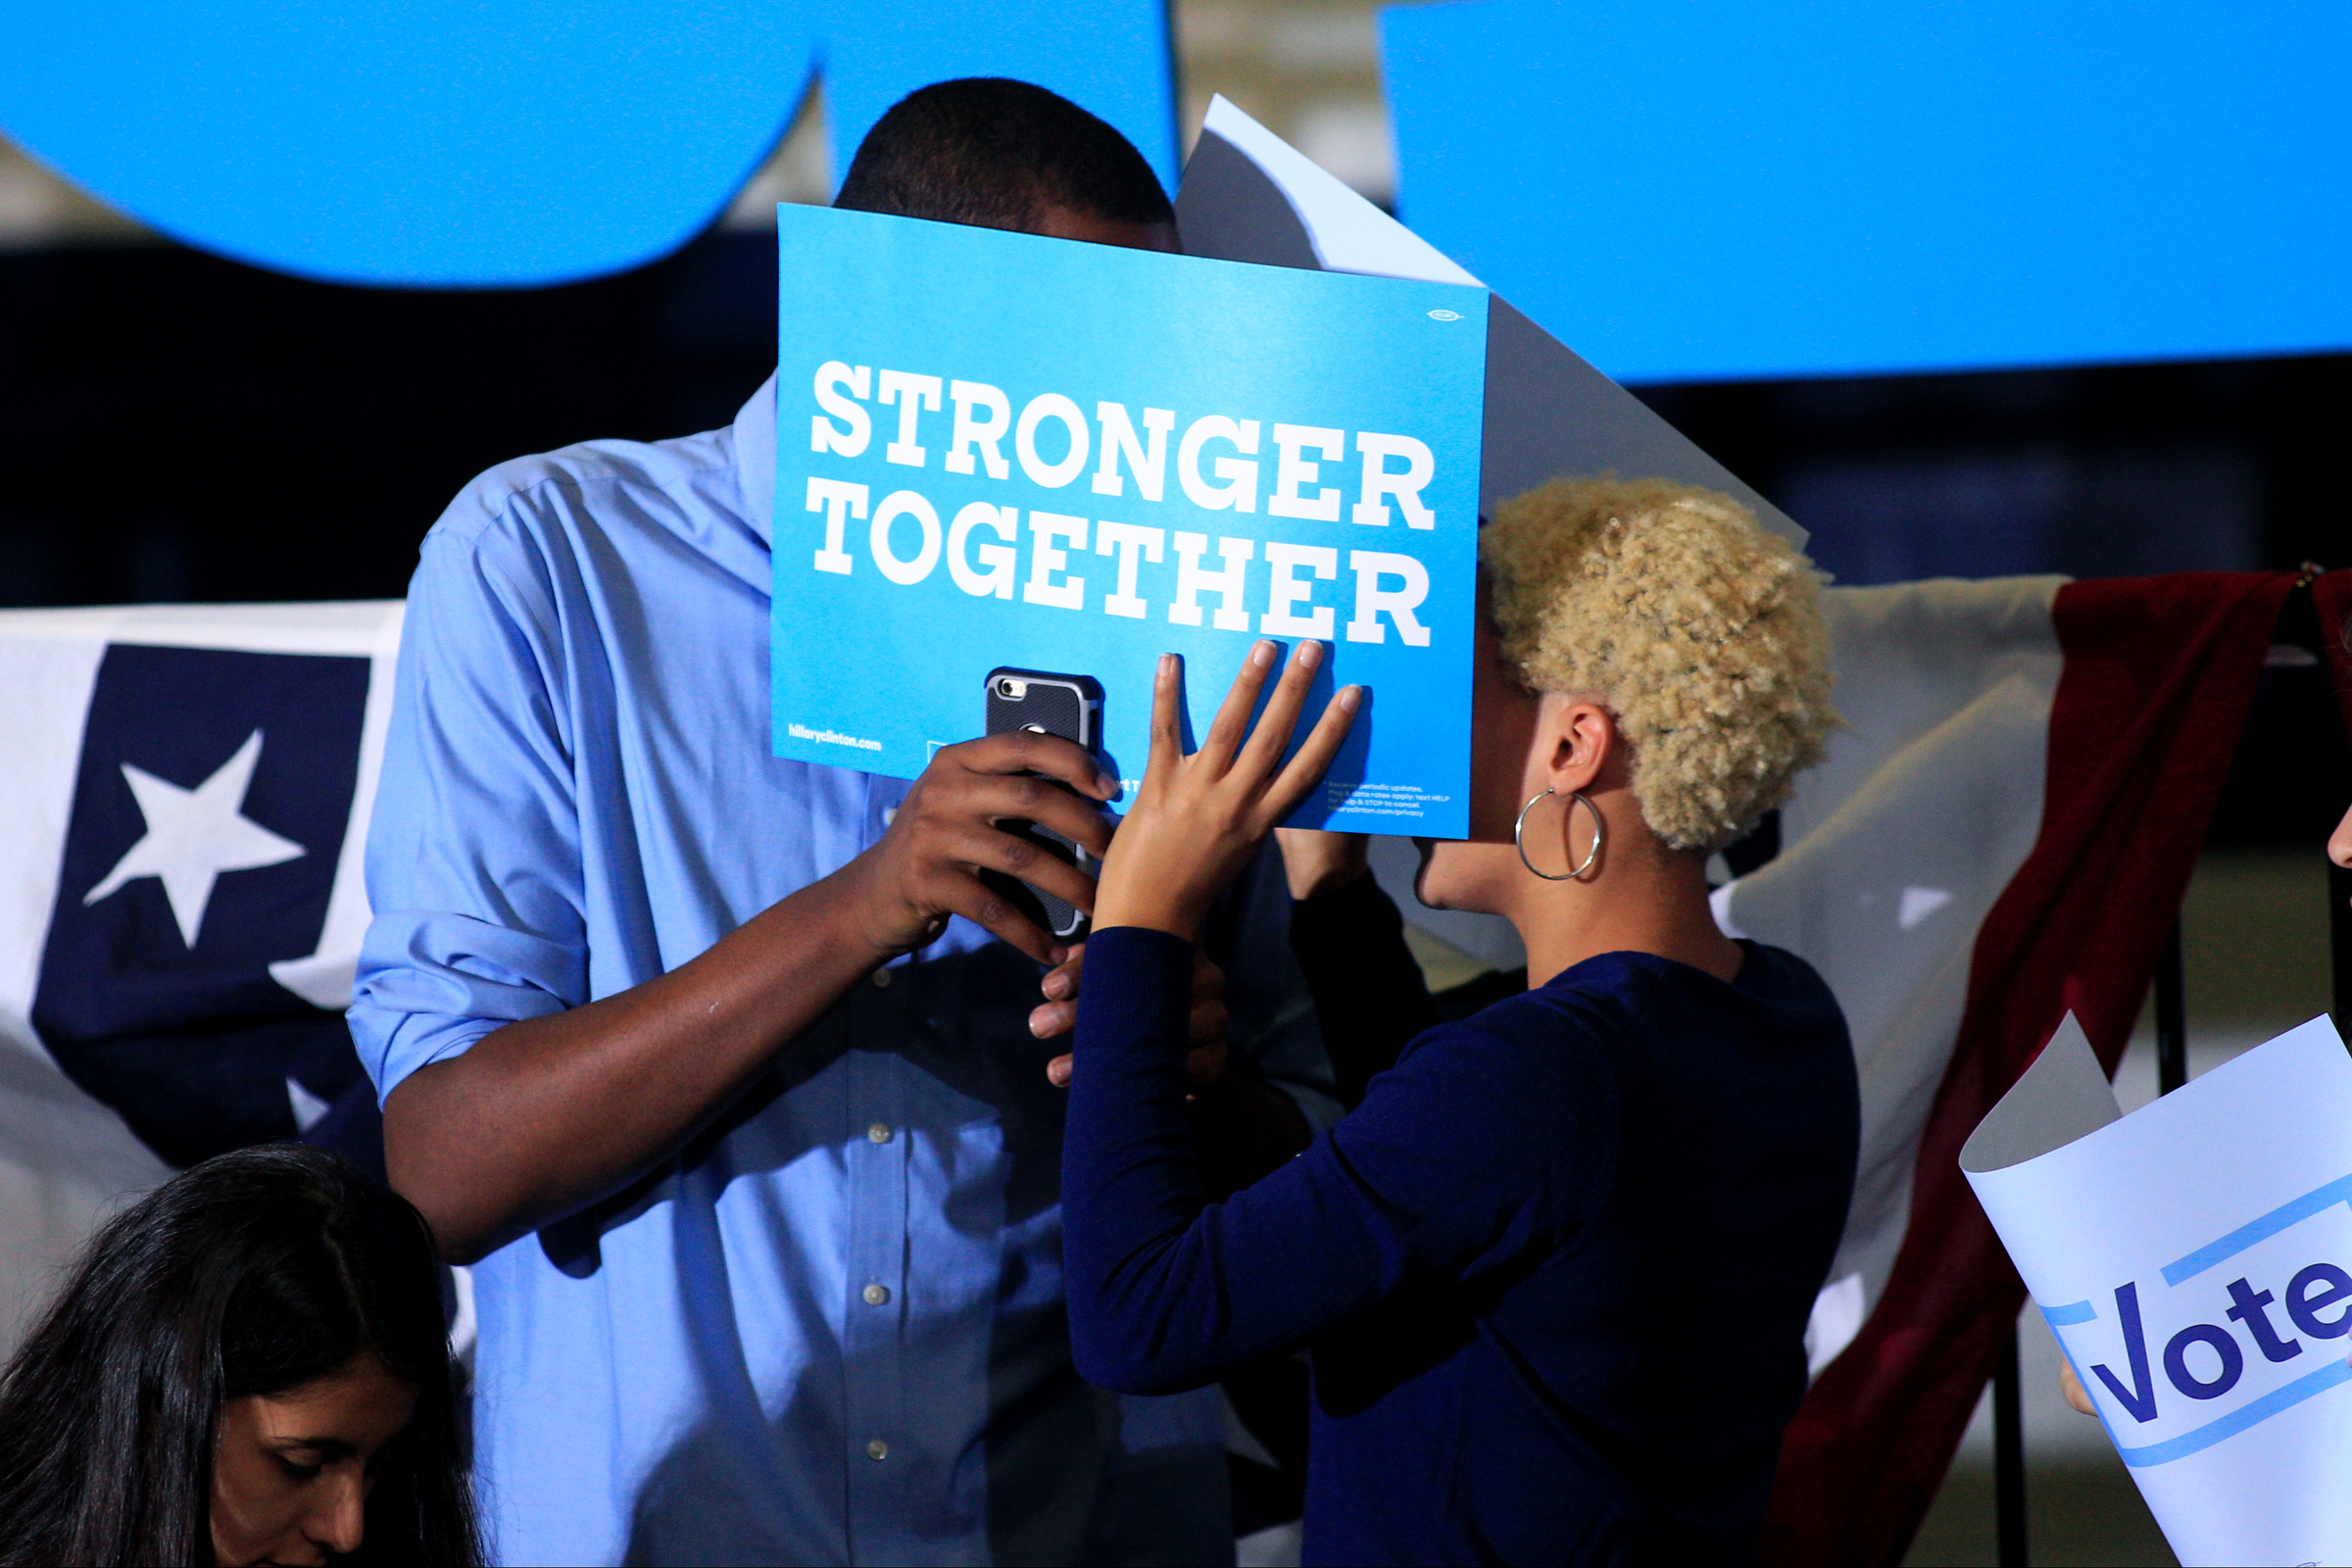 Two supporters of Democratic presidential nominee Hillary Clinton hide behind a campaign sign before the candidate speaks at a rally promoting her college tuition plan at The University of New Hampshire in Durham, New Hampshire on September 28, 2016.